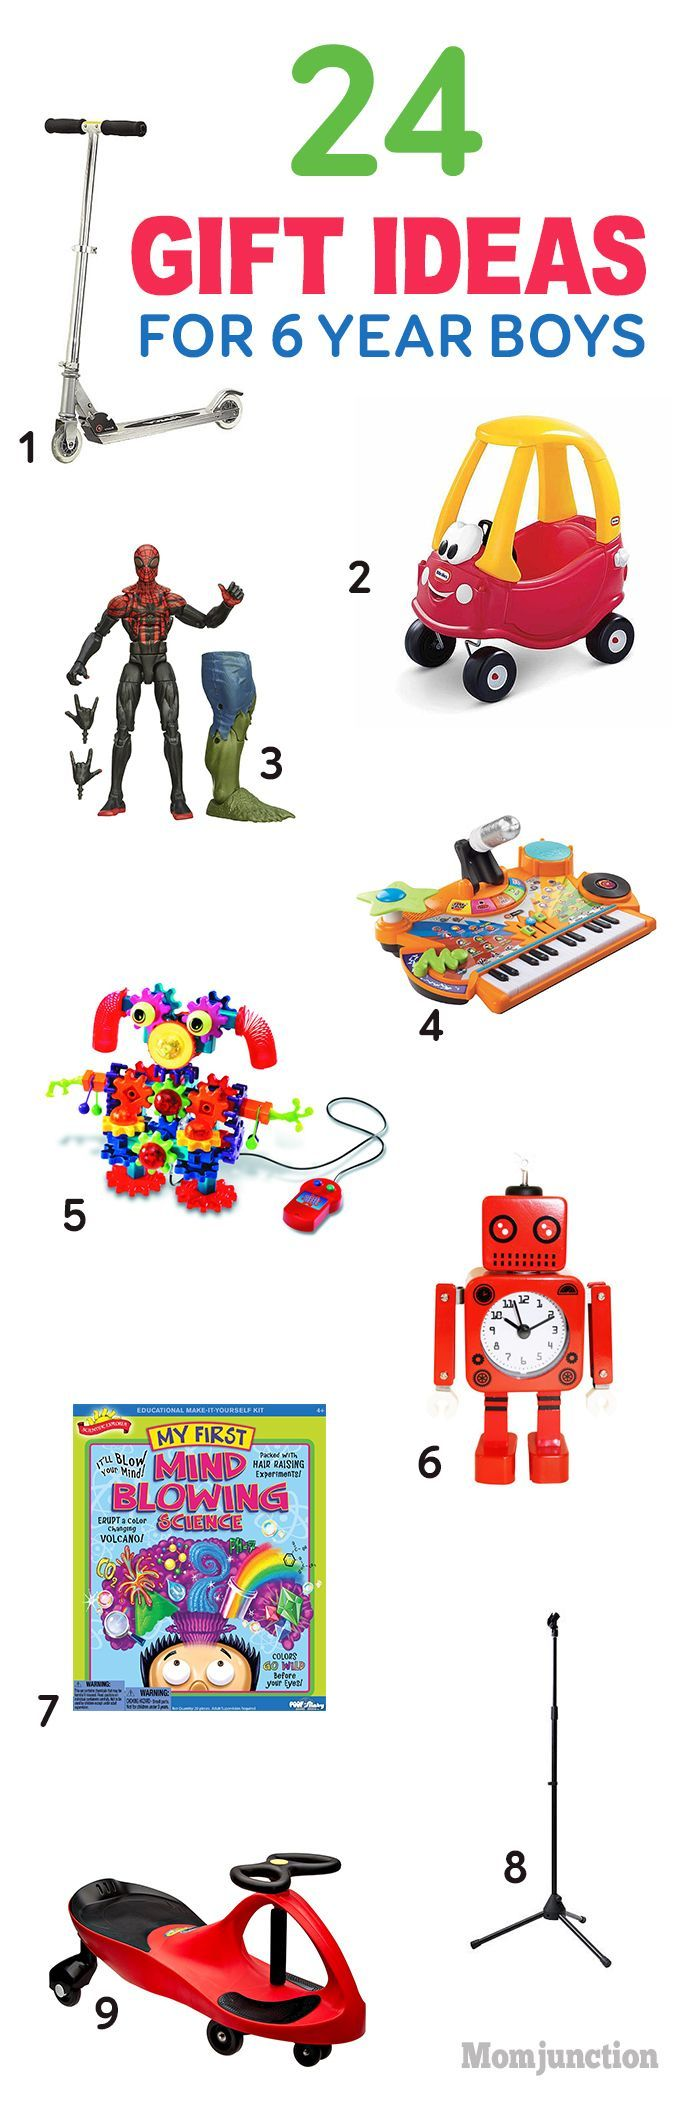 Toy 4 Wheelers For 8 Year Old Boys : Best images about toys for year old boy on pinterest